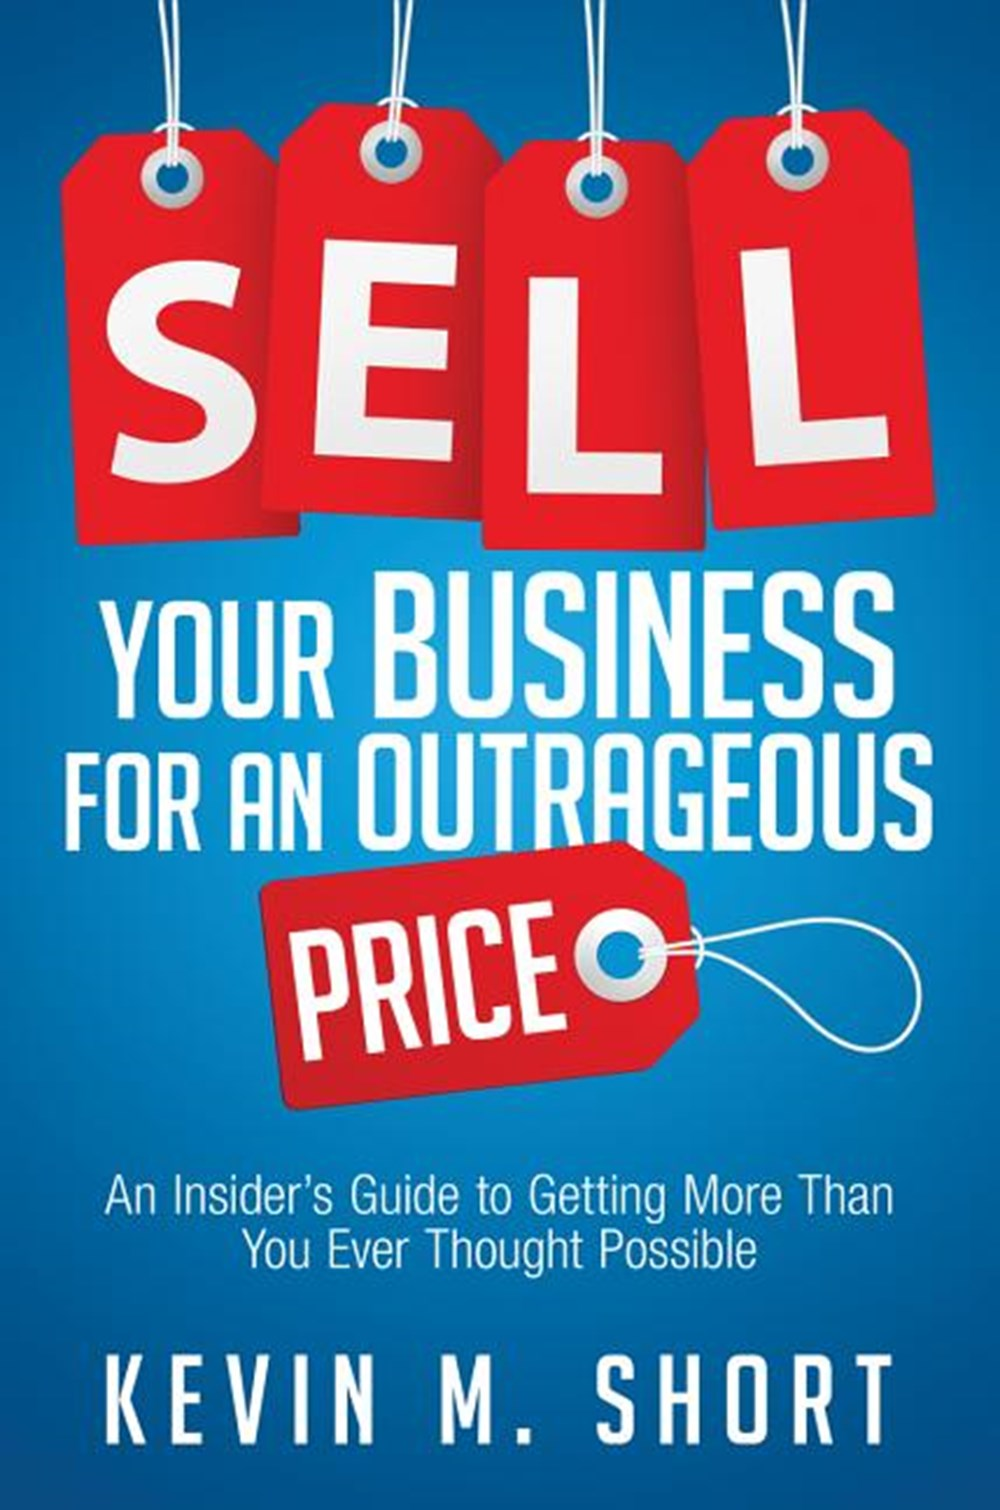 Sell Your Business for an Outrageous Price An Insider's Guide to Getting More Than You Ever Thought